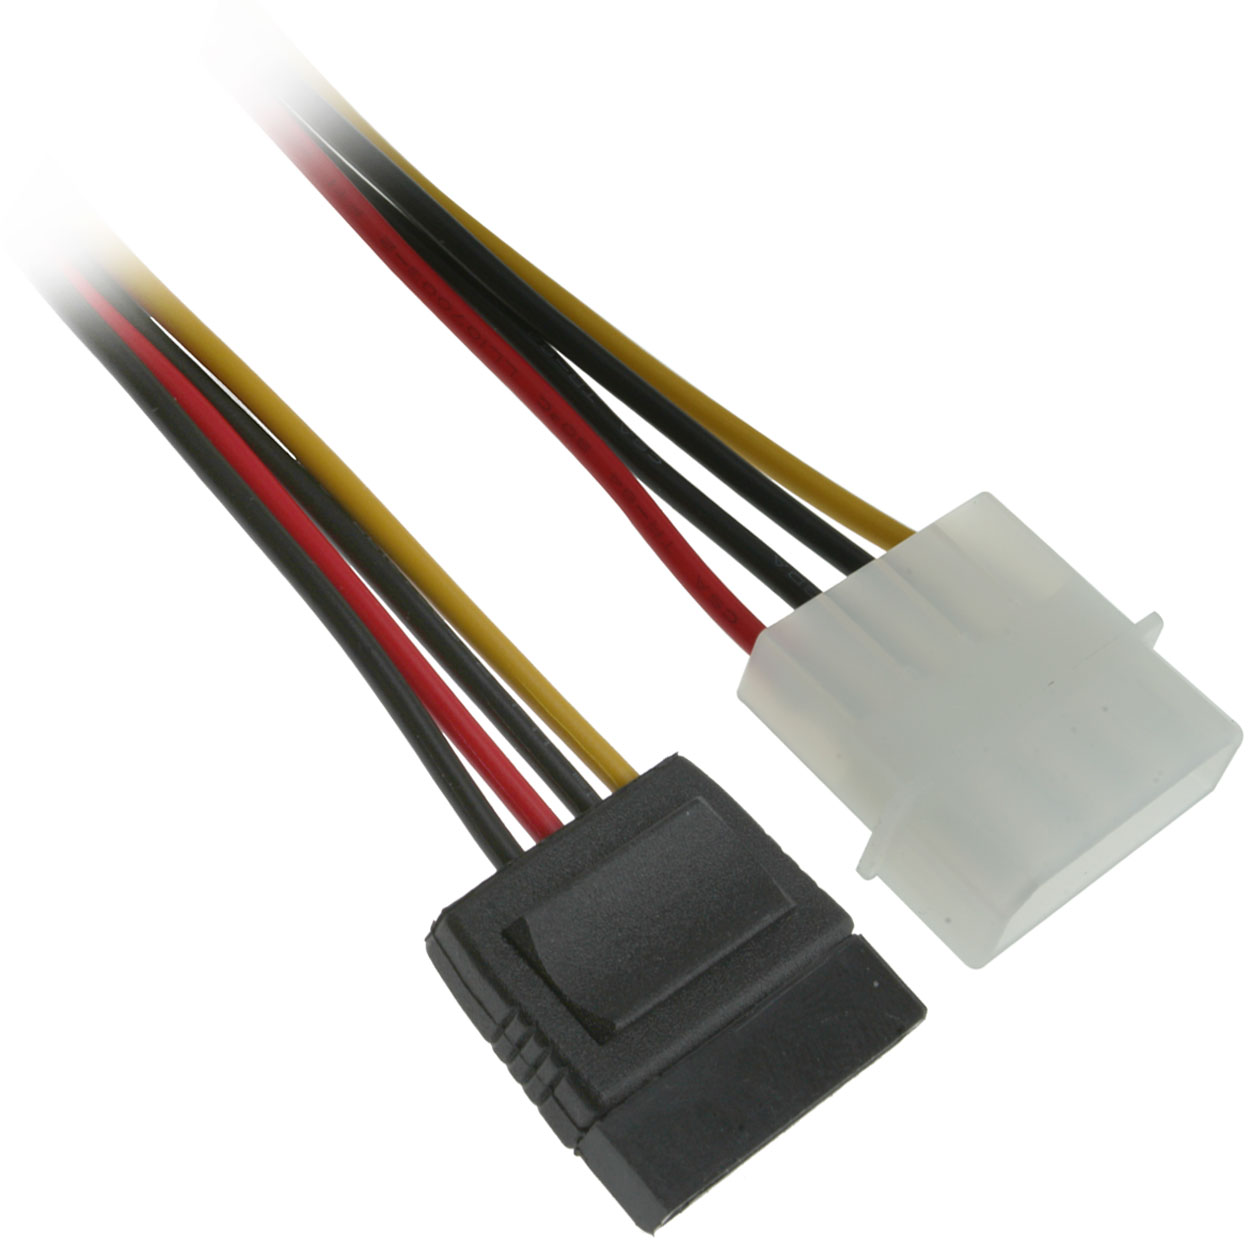 6 inch 4-Pin Molex Male to 15-Pin SATA Female Power Cable